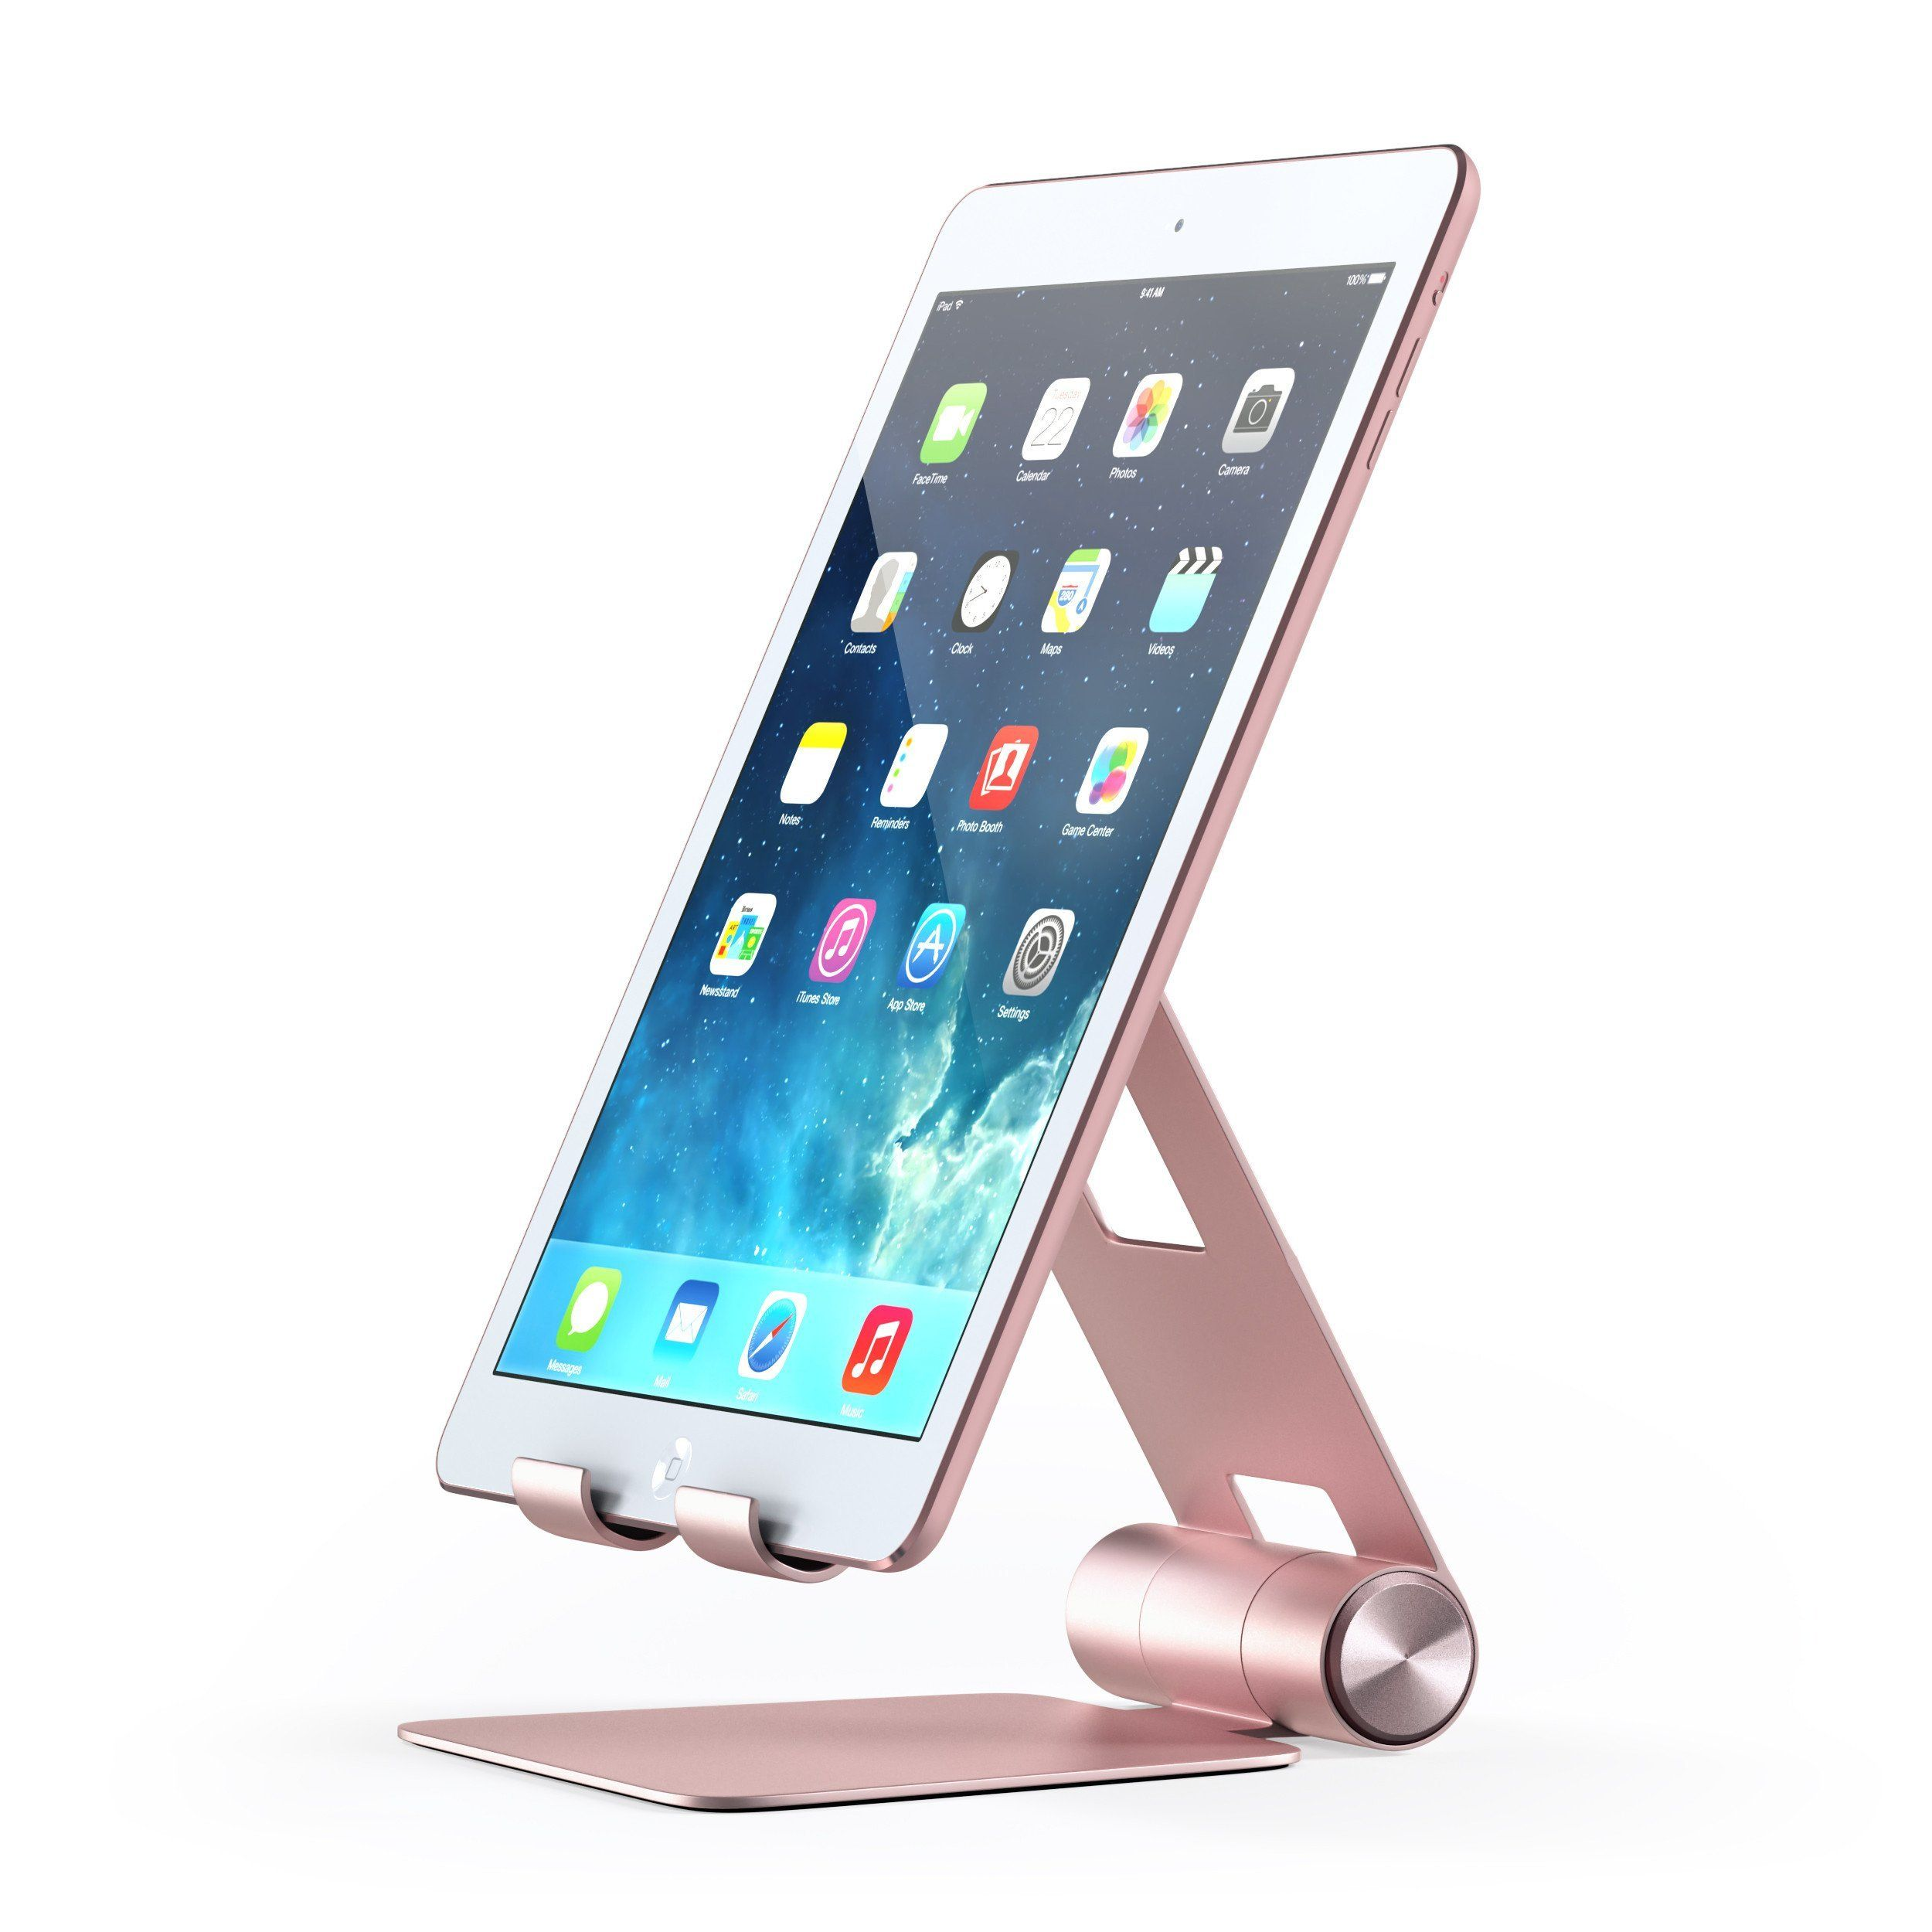 Universal Multi-angle Mount Holder Stand For iPhone Samsung iPad 2 3 Tablet